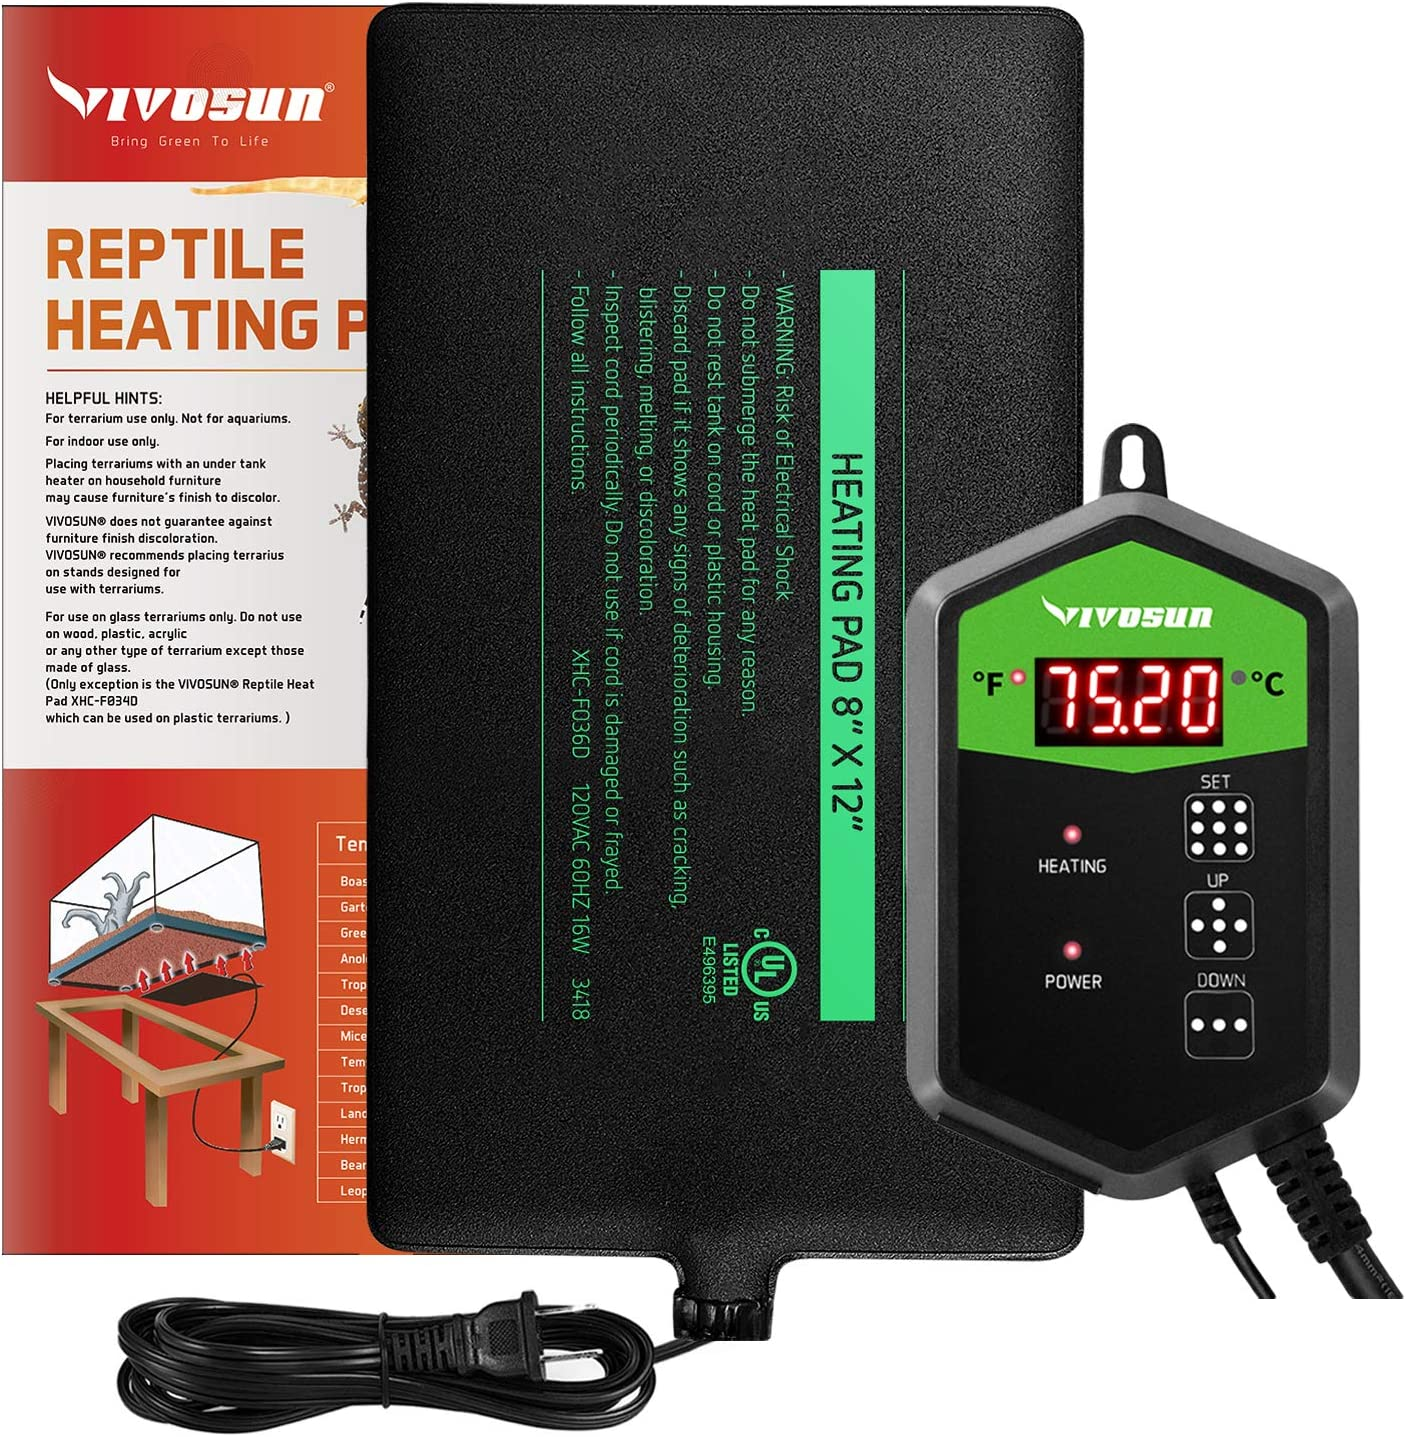 VIVOSUN Reptile Heat Mat with Digital Thermostat